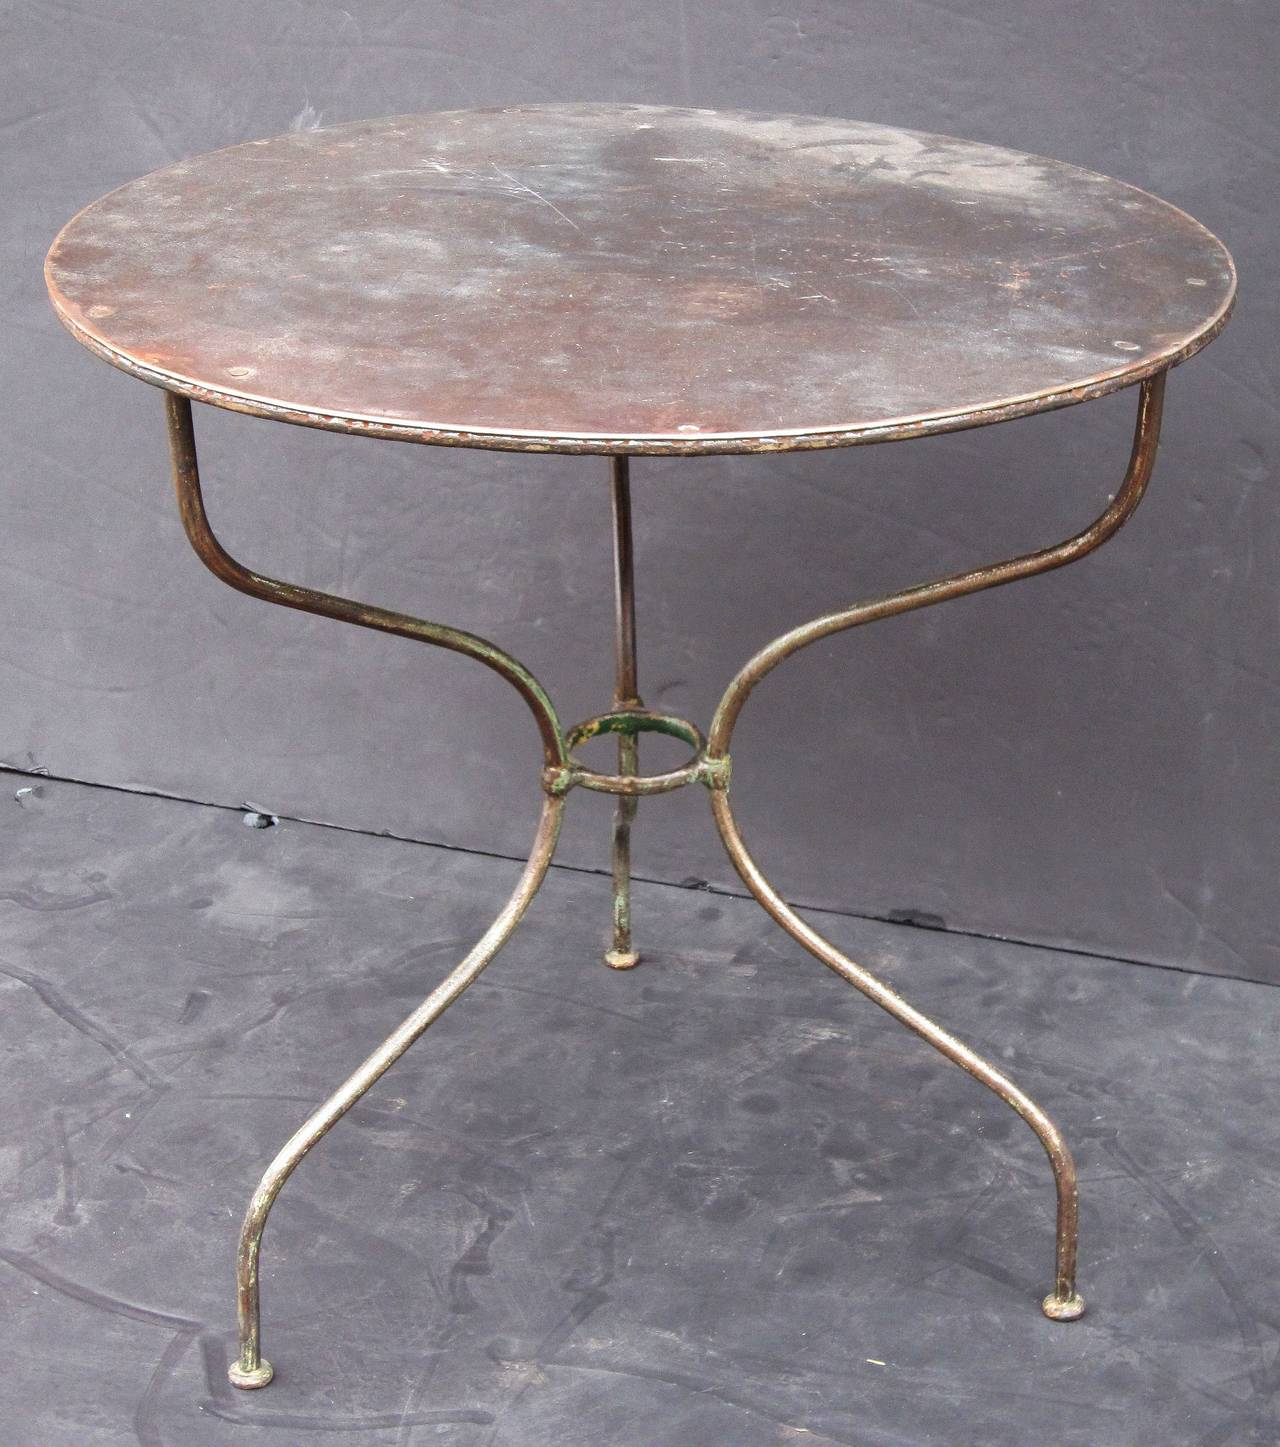 A Fine French Café Or Bistro Table Featuring A Round Zinc Top With A Lovely  Patina